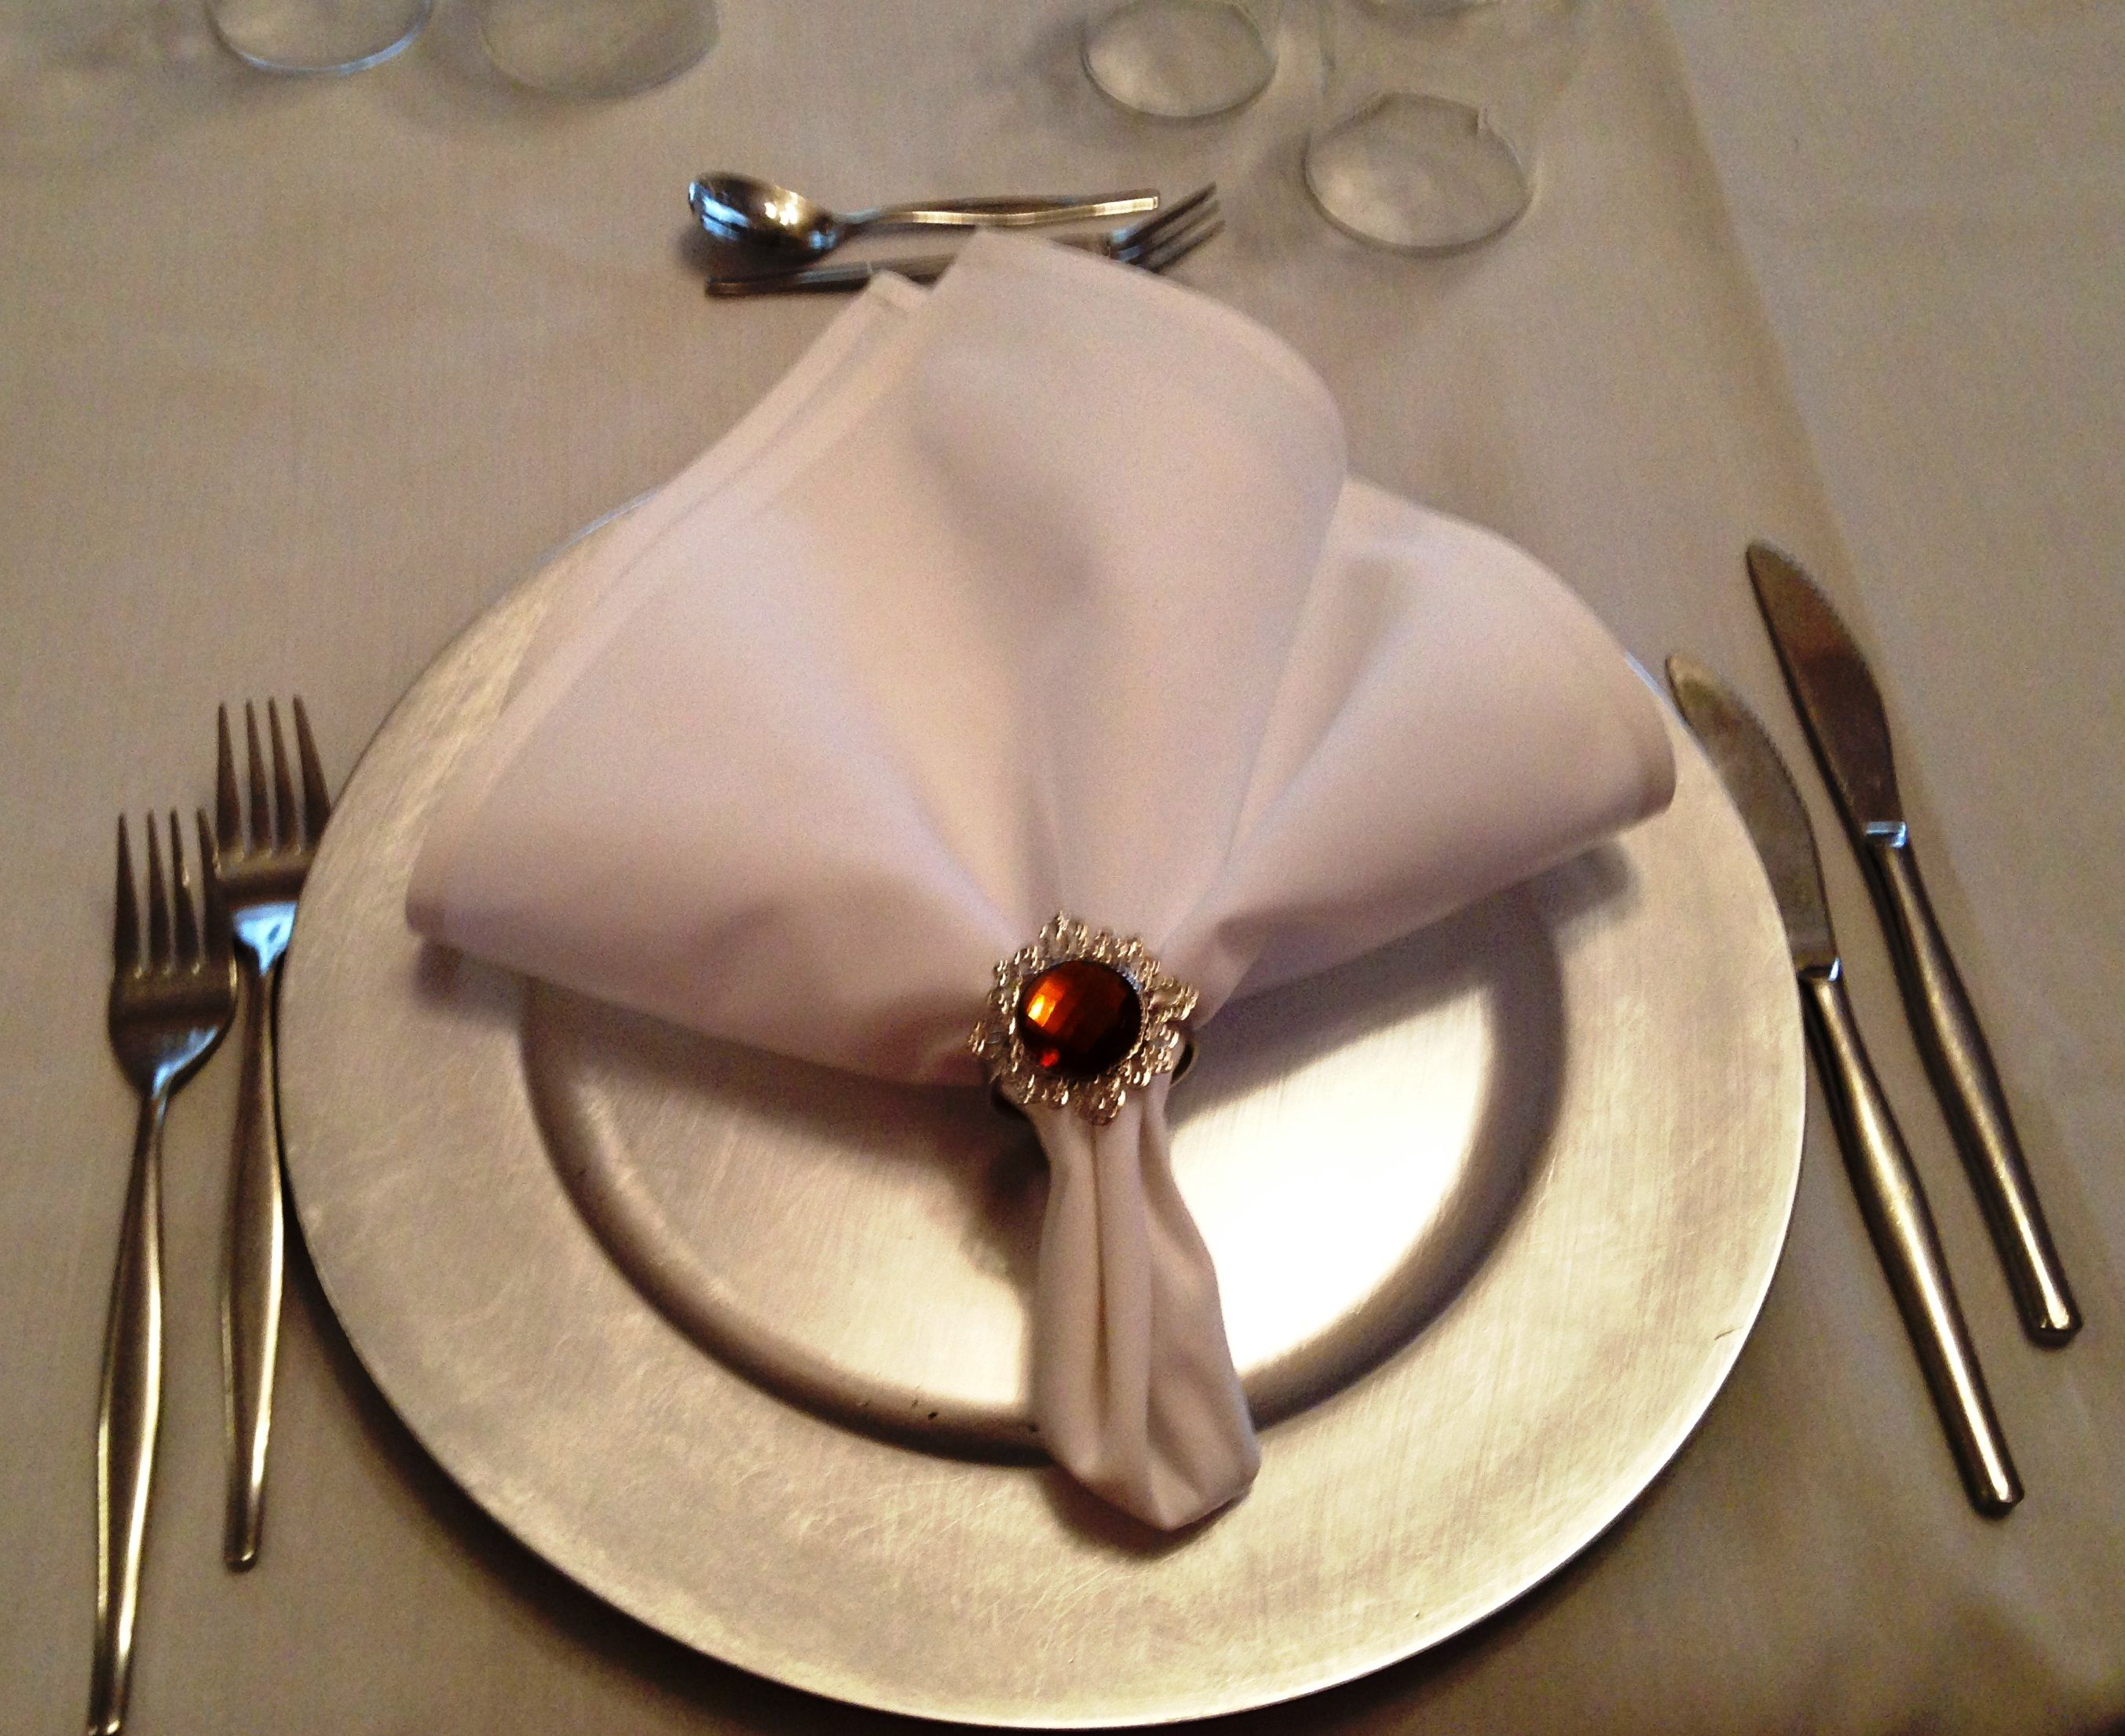 Silver charger plate with gold napkin ring wedding decorations silver charger plate with gold napkin ring wedding decorations heritage castle abbey of the roses qld junglespirit Choice Image